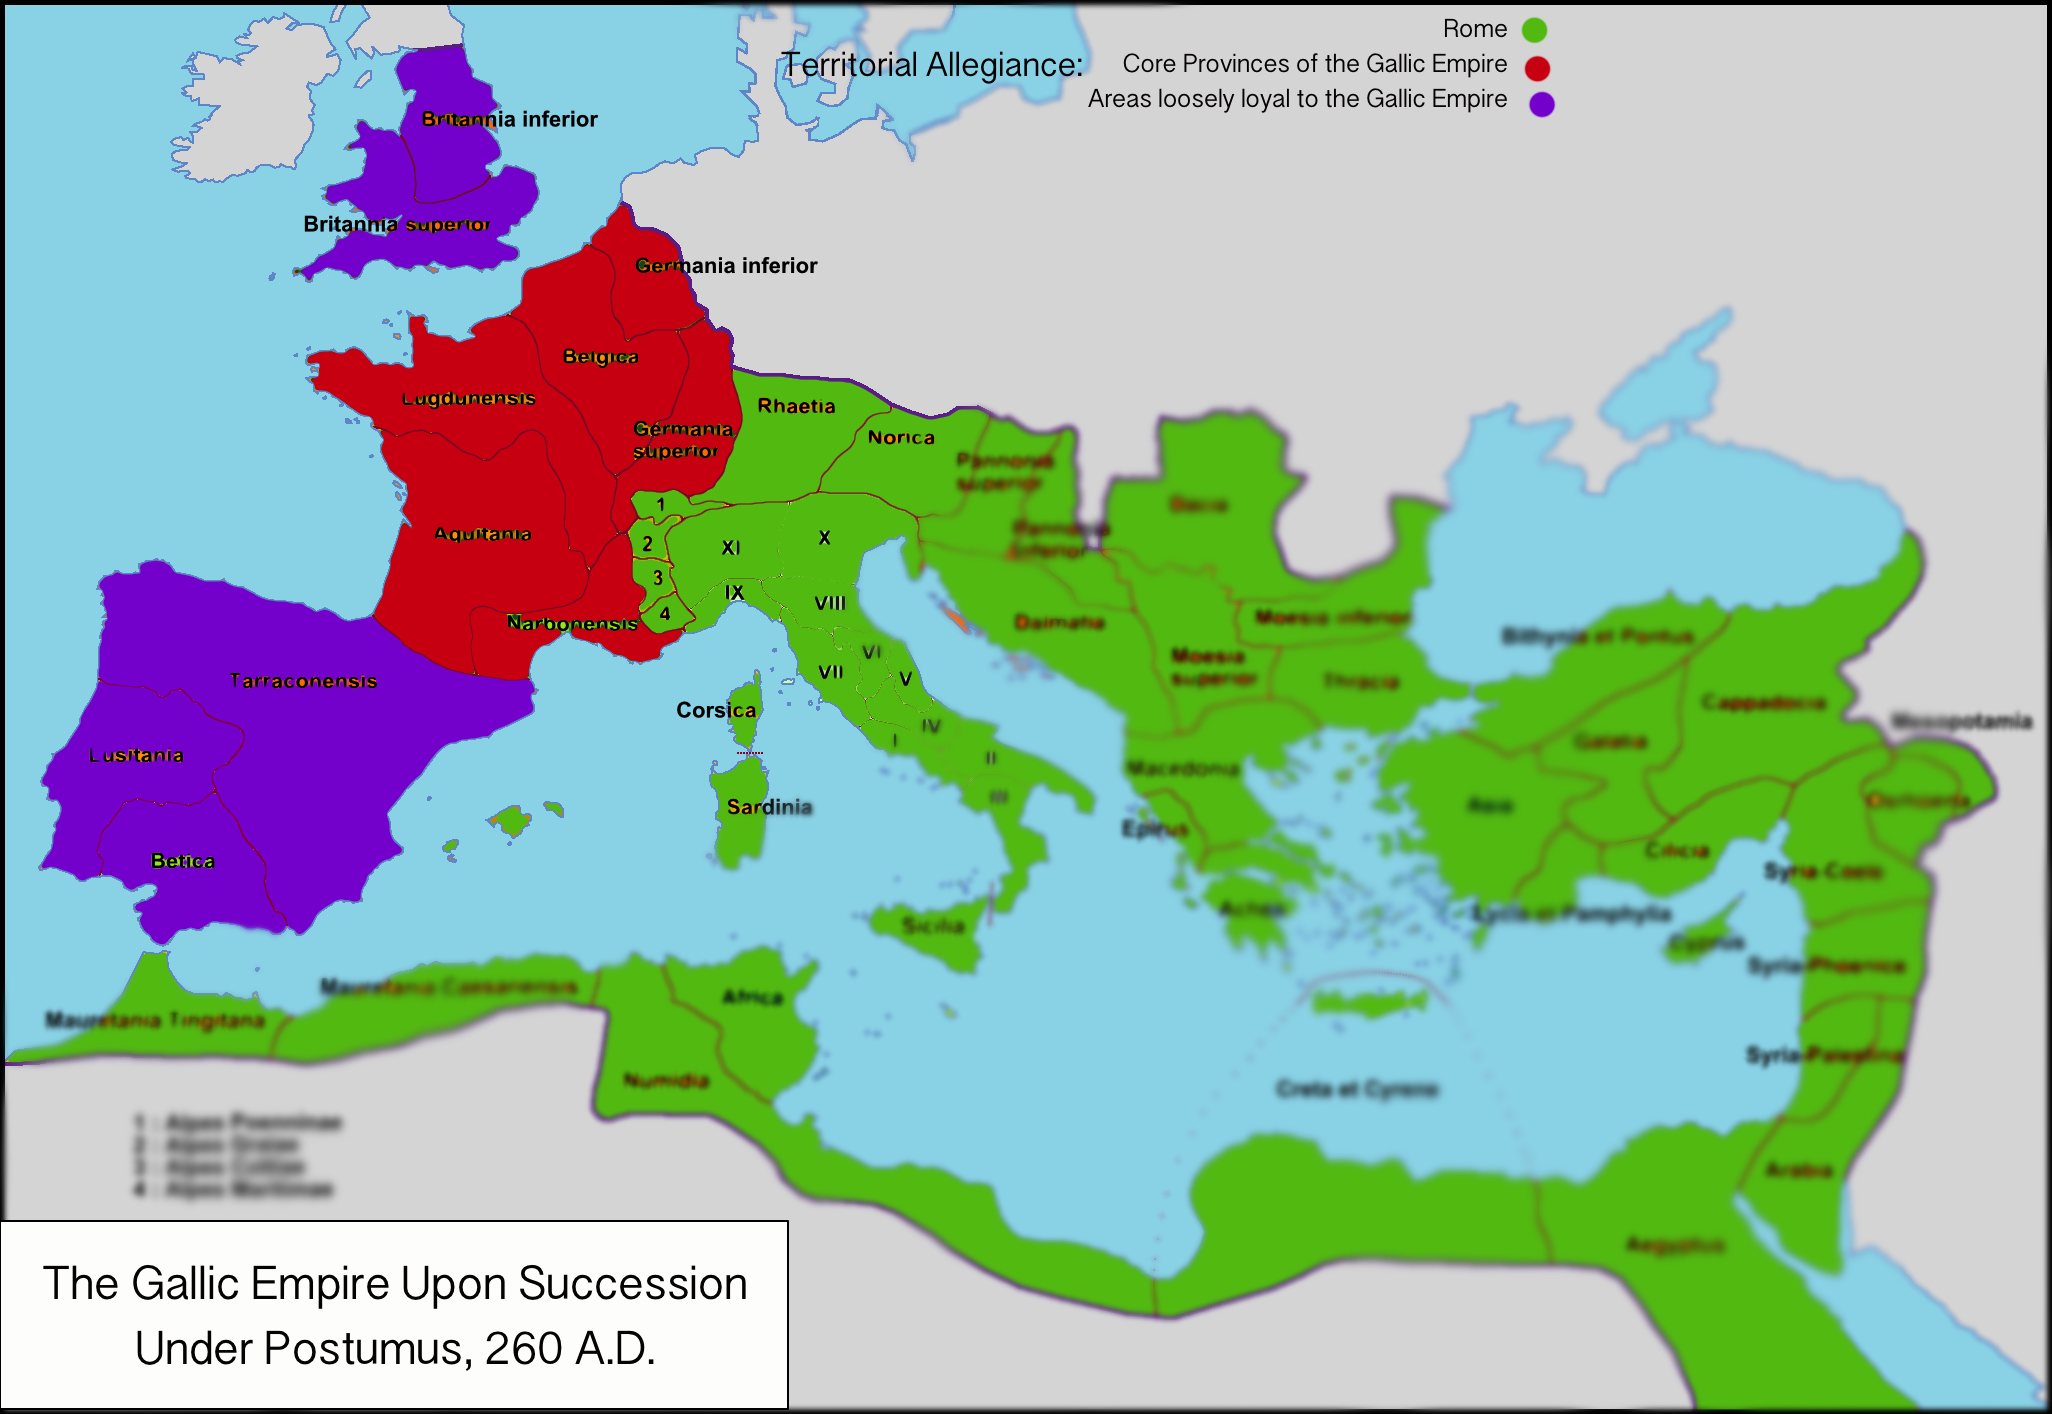 The Gallic Empire at its greatest territorial extent, after its creation by  Postumus in 260.